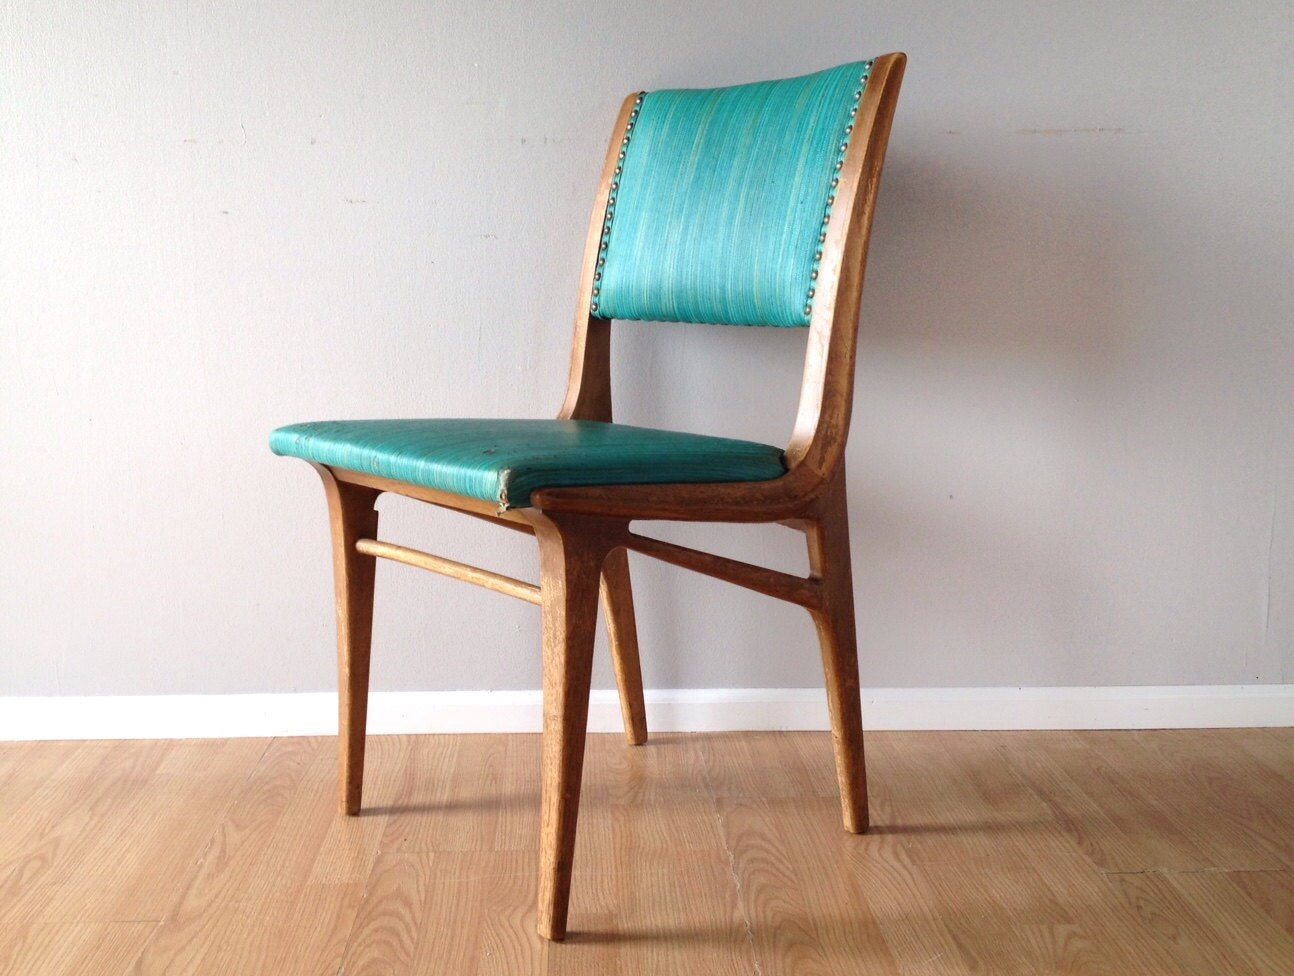 Vintage 1950s drexel dining chair retro mid century modern for Retro modern dining chairs